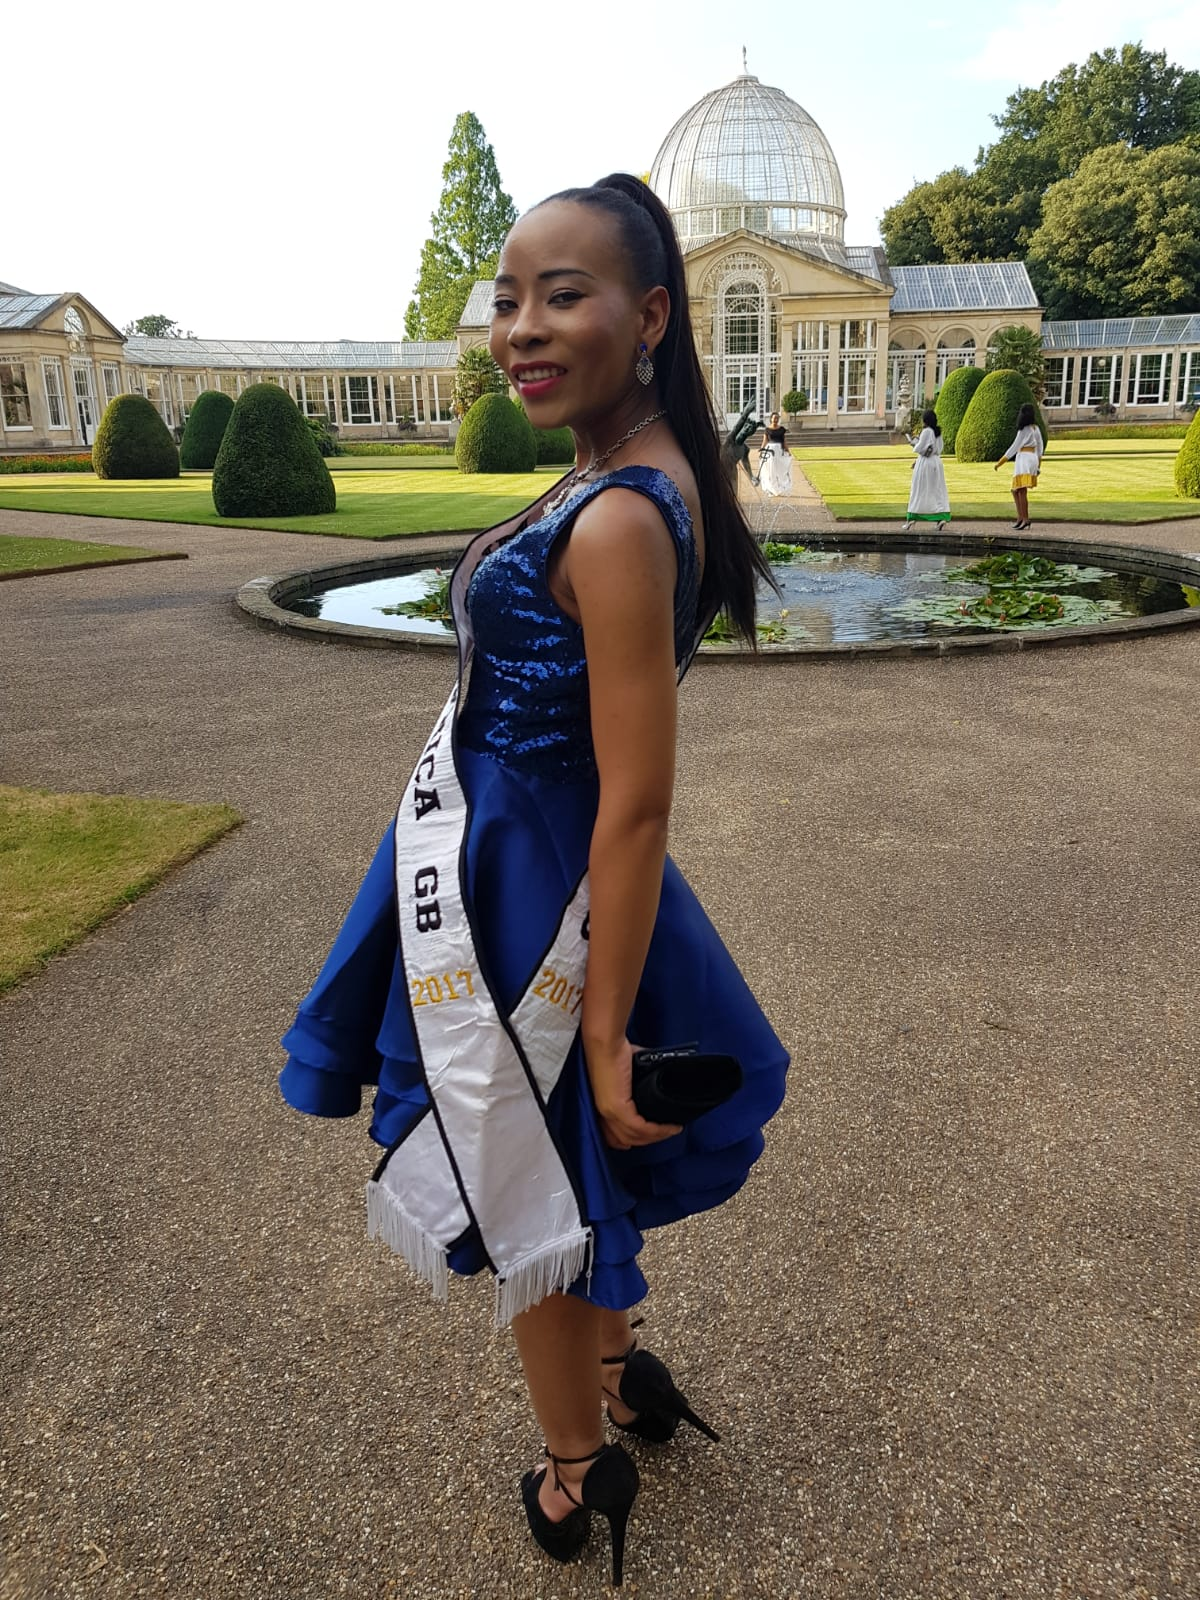 miss africa gb uk 2018 event2